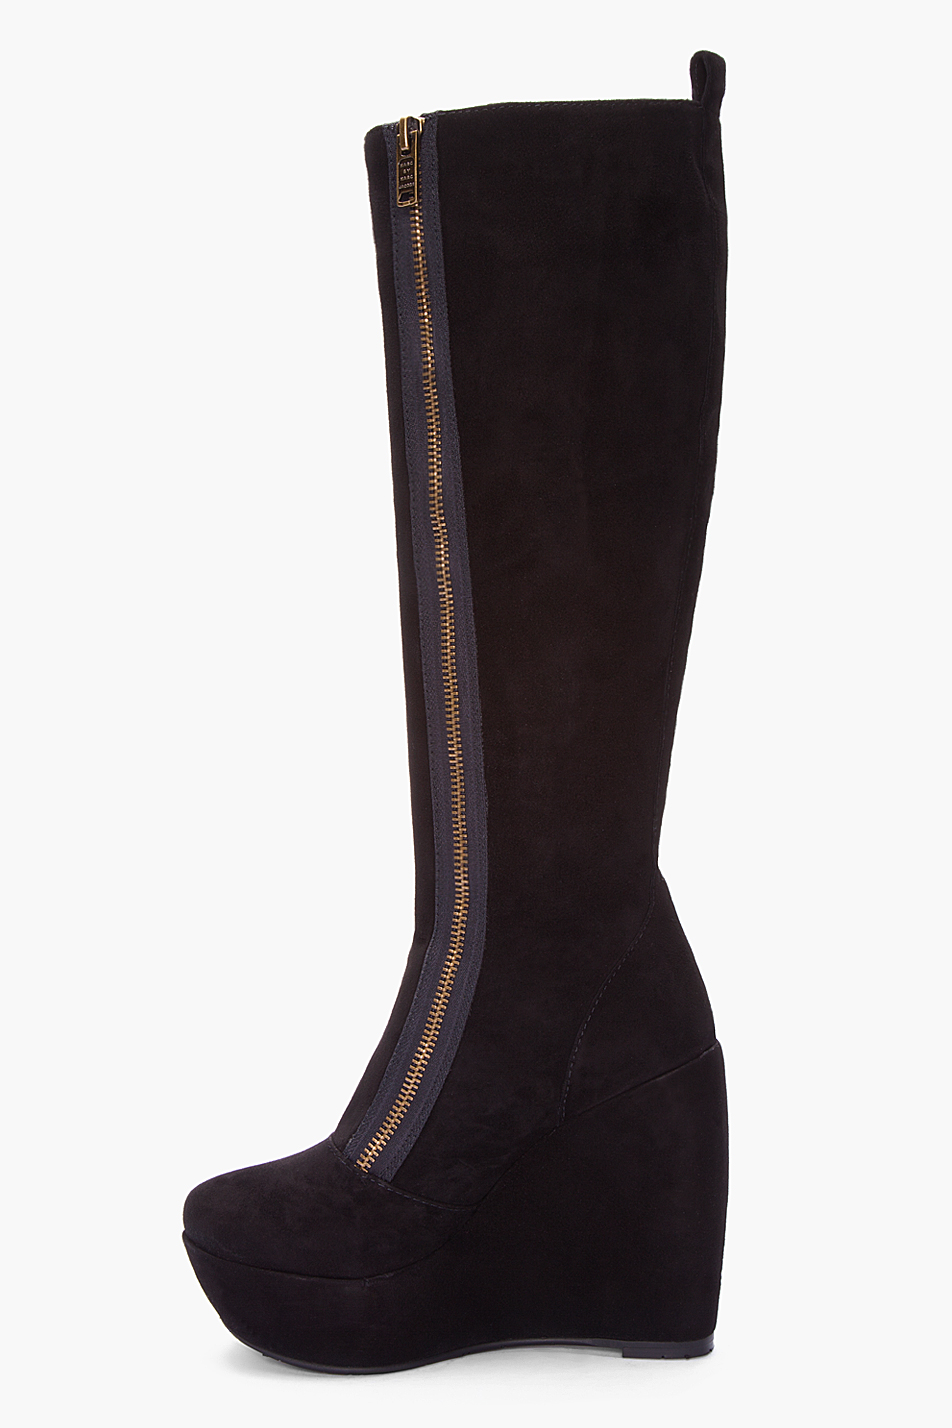 Lyst Marc By Marc Jacobs Black Suede Wedge Boots In Black